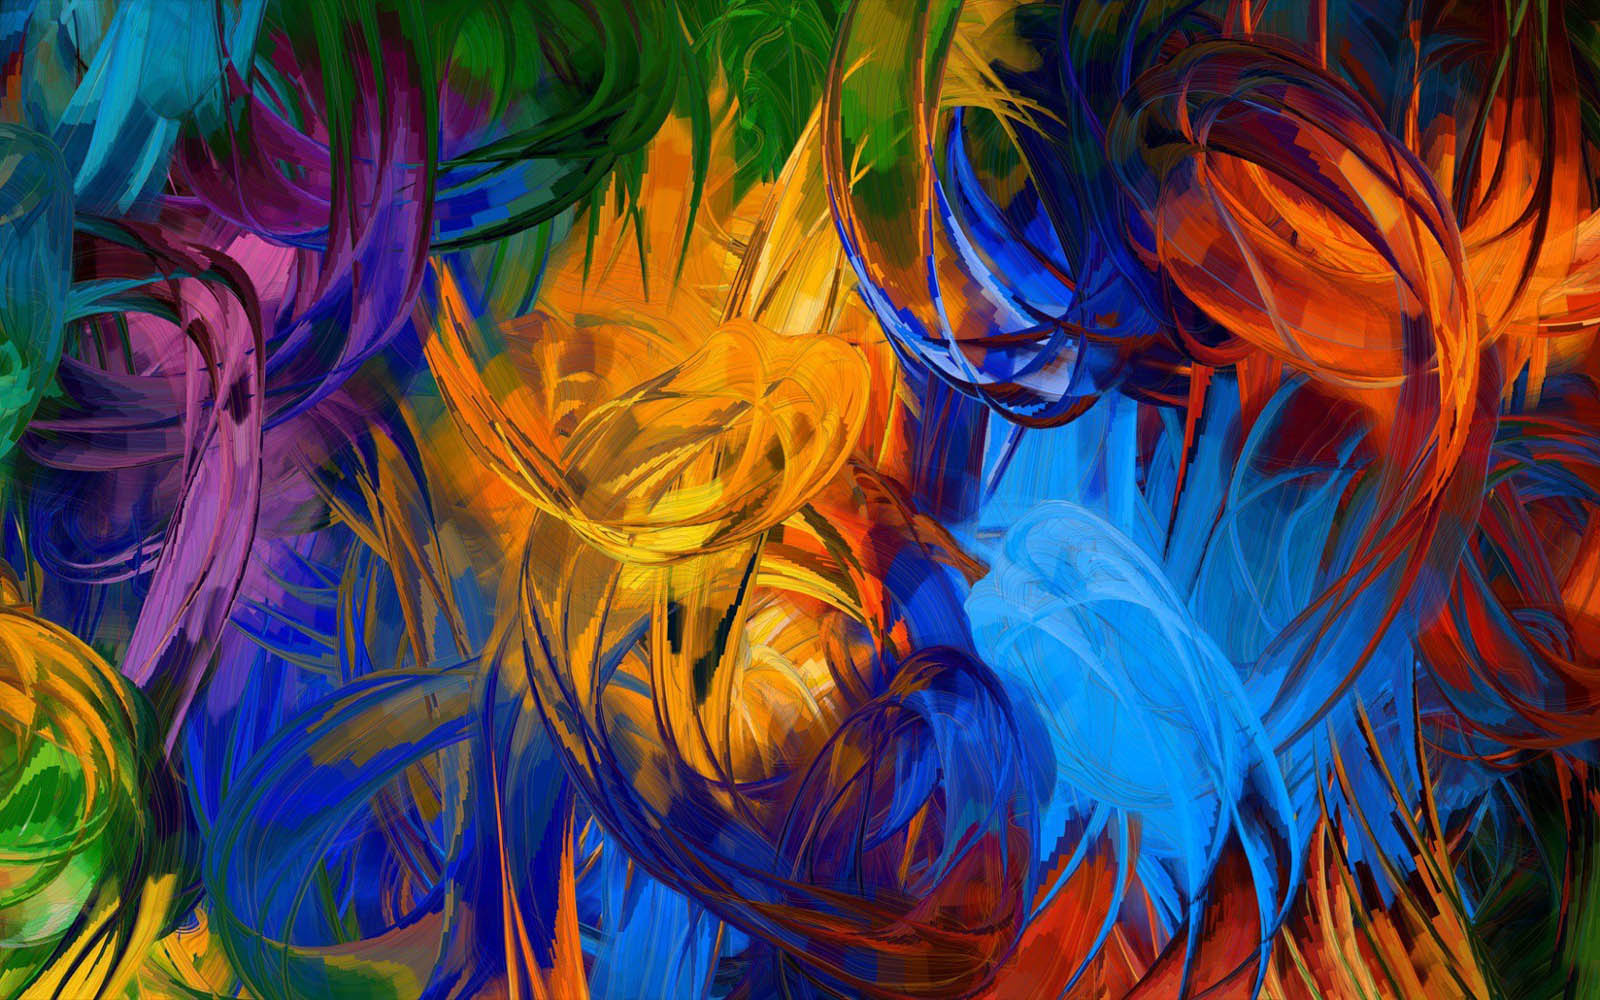 abstract paintings wallpapers abstract paintings desktop wallpapers 1600x1000